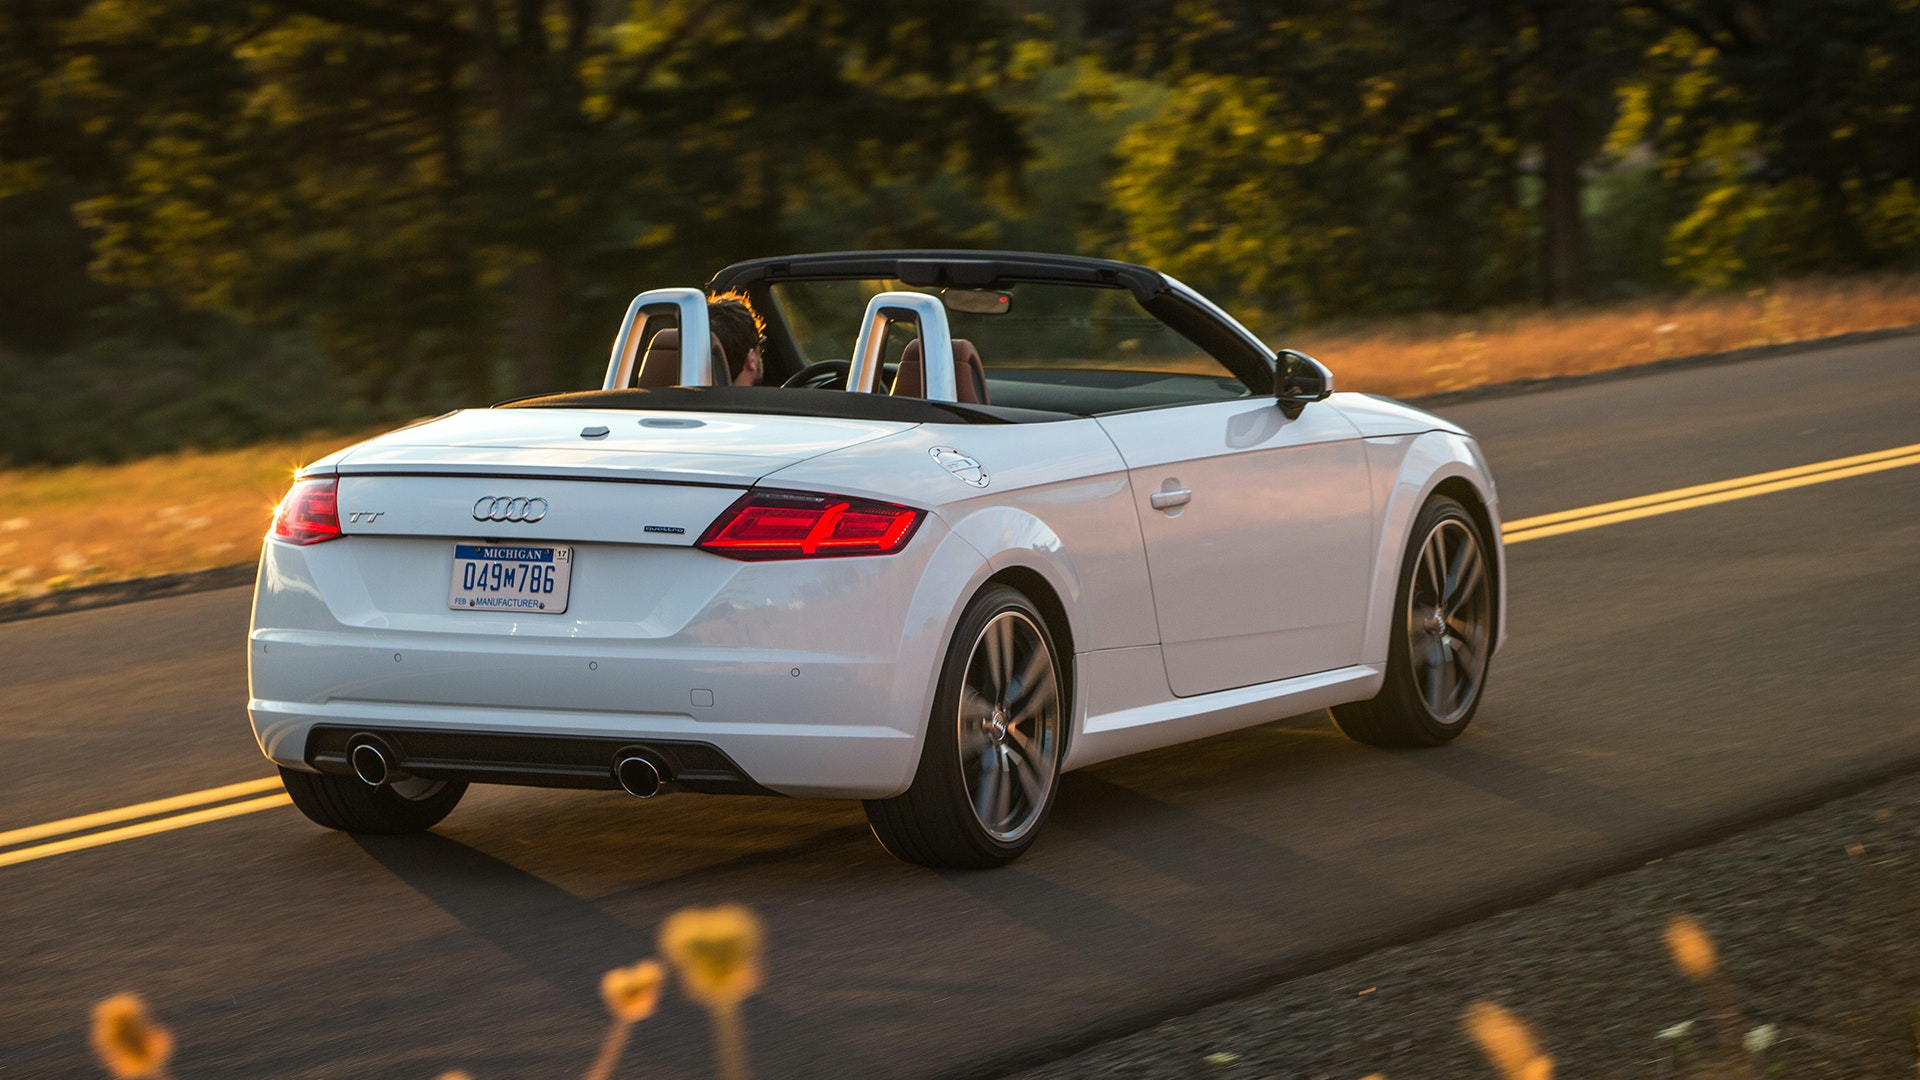 Audi's $47,450 TT Roadster is included in The Jefferson's golden leaf-peeping package.